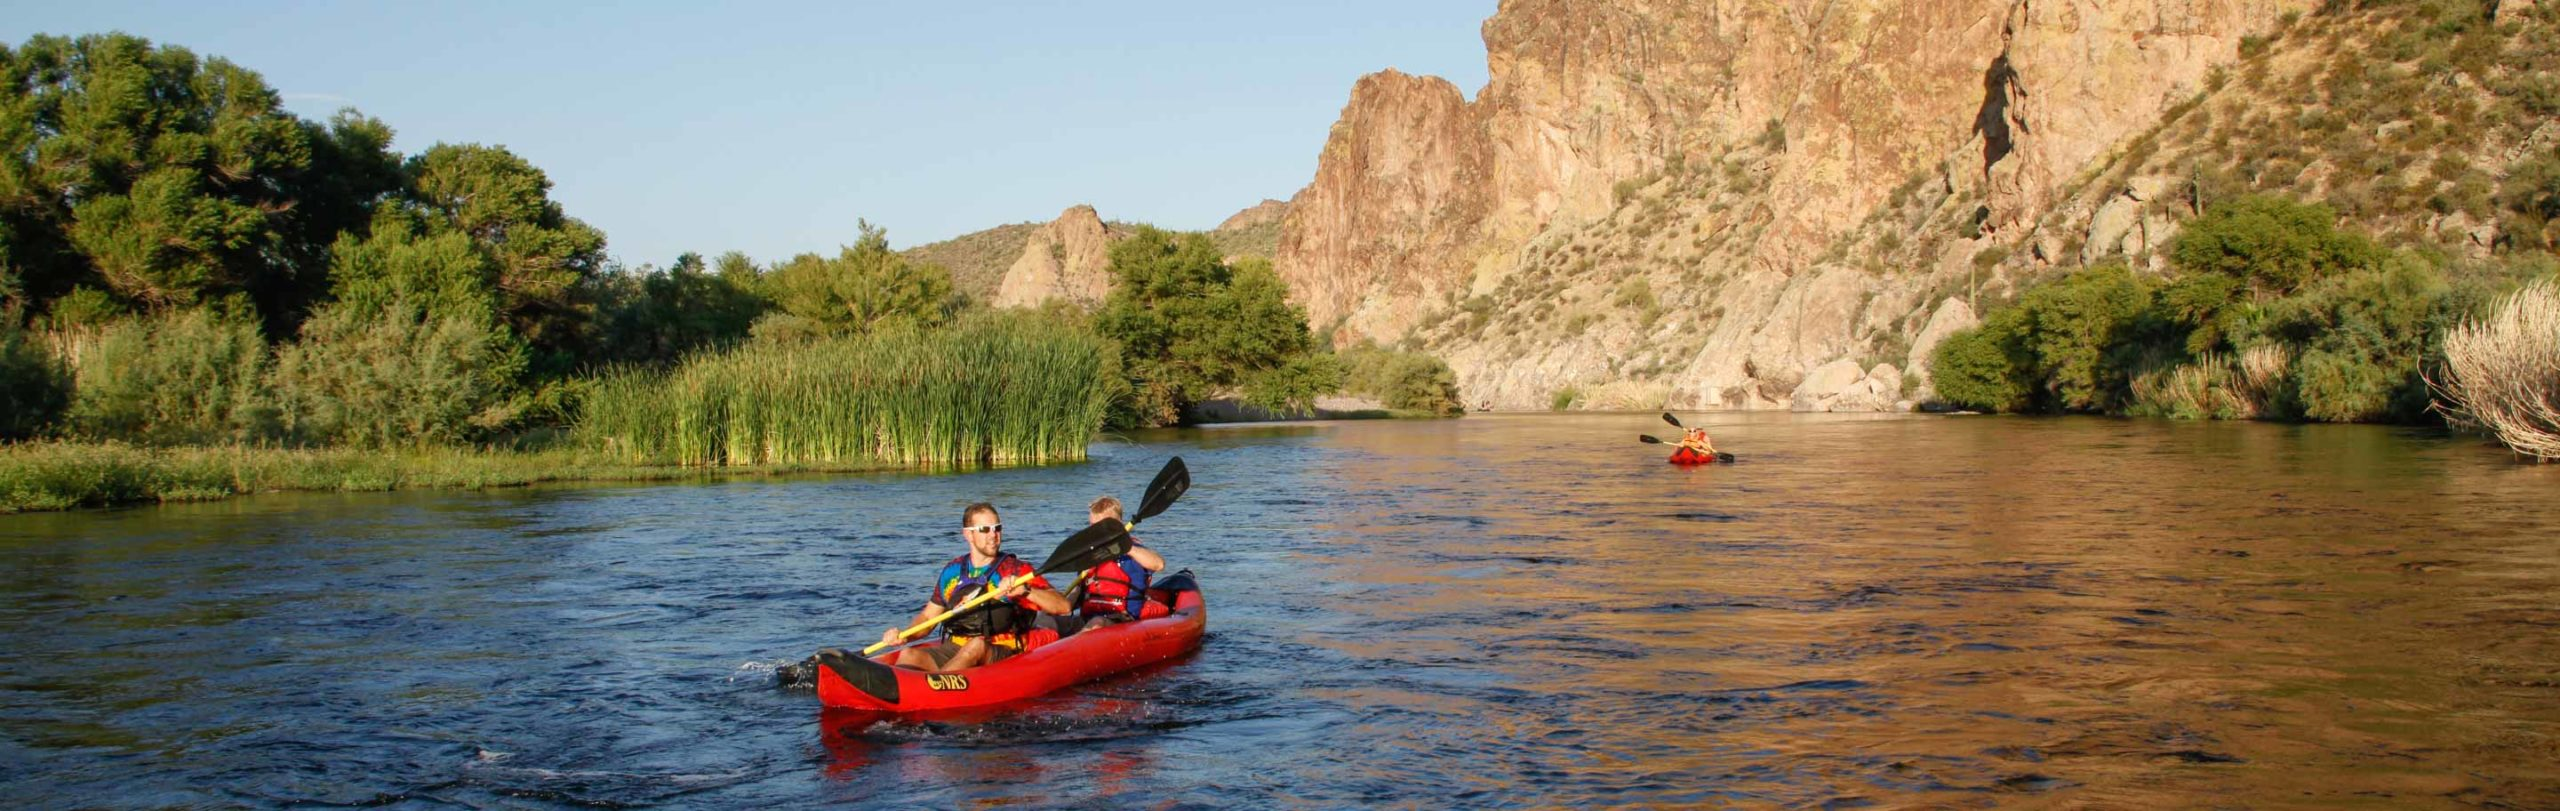 Kayakers in inflatable kayaks on the lower Salt River in Arizona